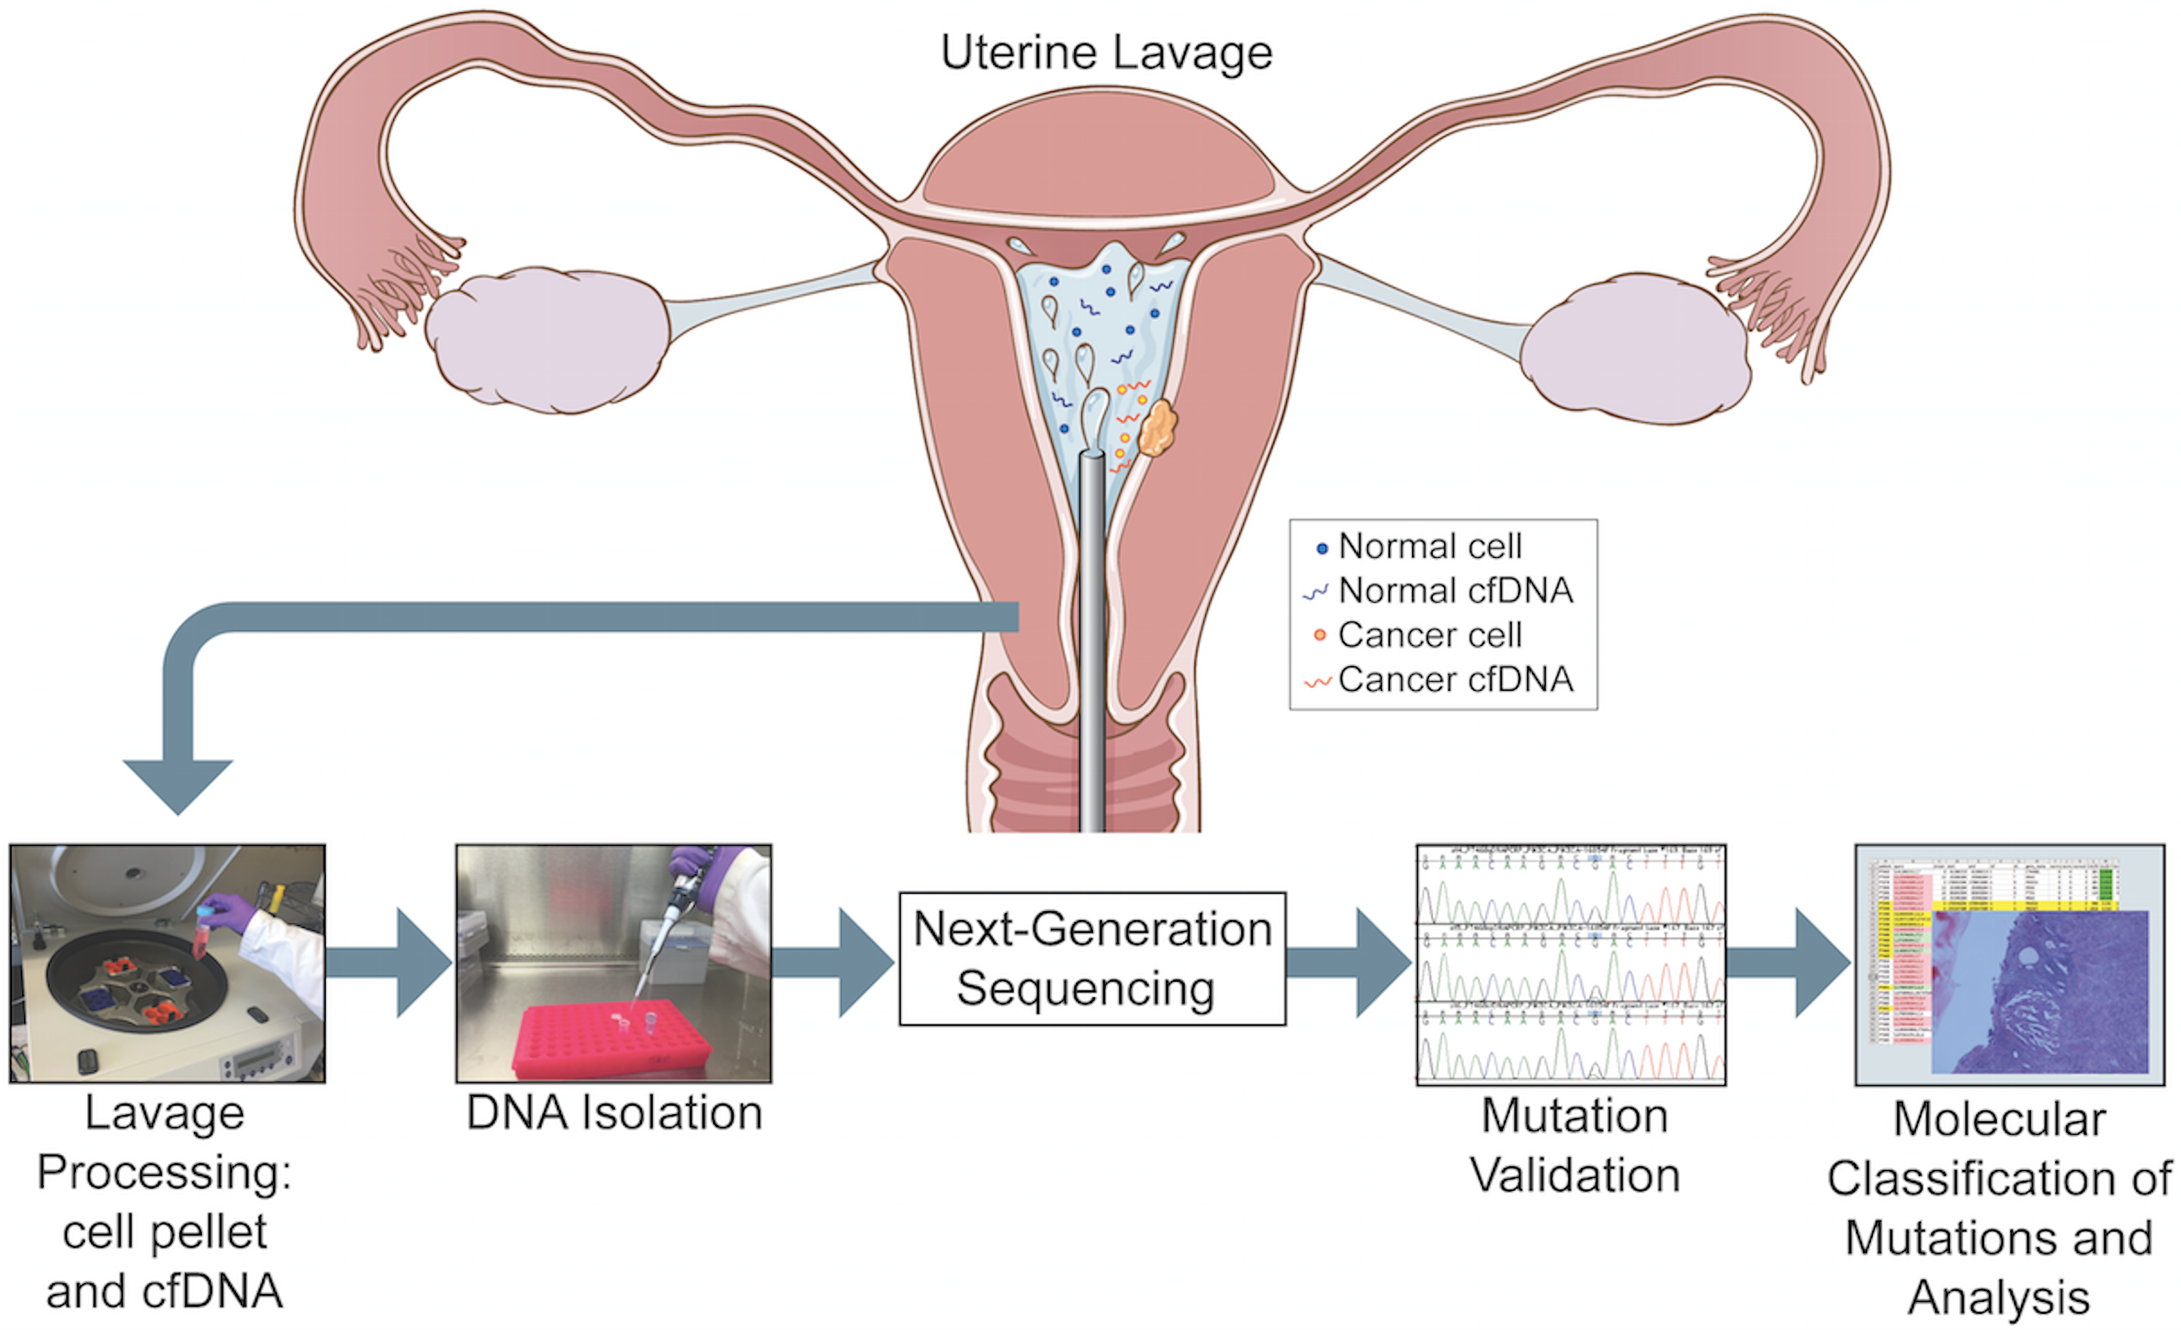 Overview of the study pipeline beginning with collection of uterine lavage fluid at the initiation of hysteroscopy.